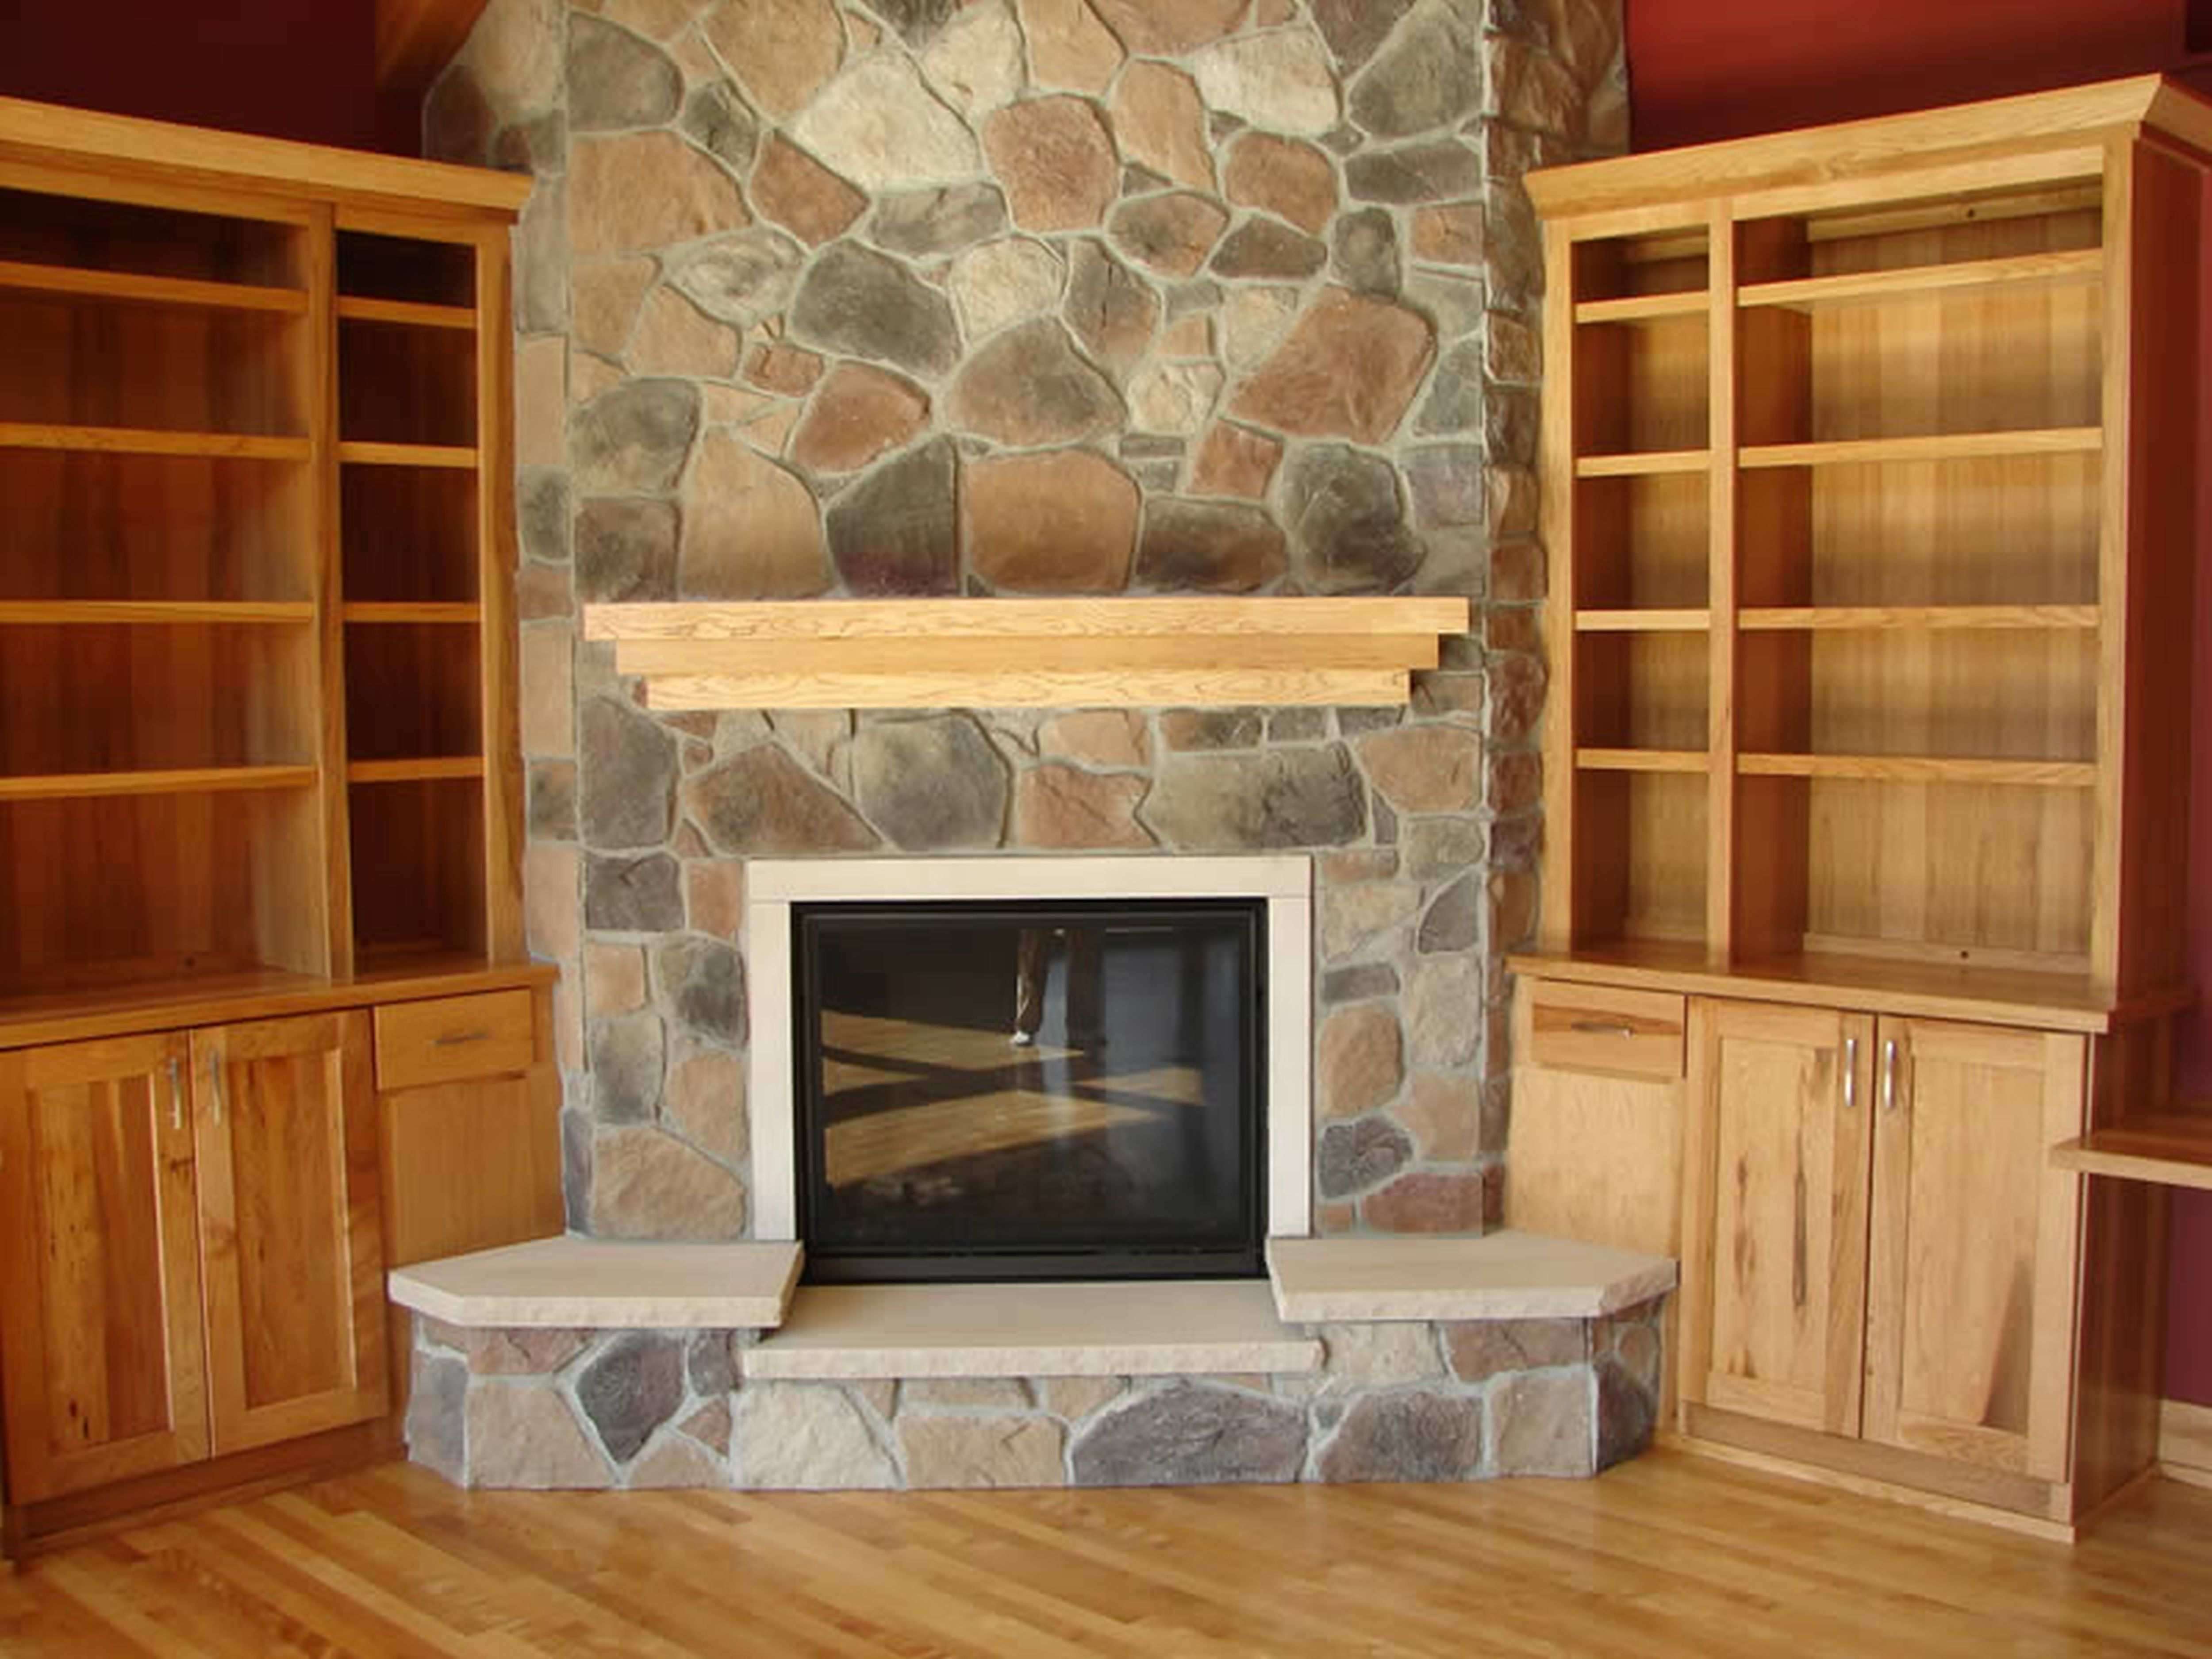 Captivating Amazing Stone Fireplace Surrounds Ideas Exciting Pics Of Stone Fireplaces  Nice Lighting Collaboration, Contemporary Design Stone Fireplace Mantels  Wood ...